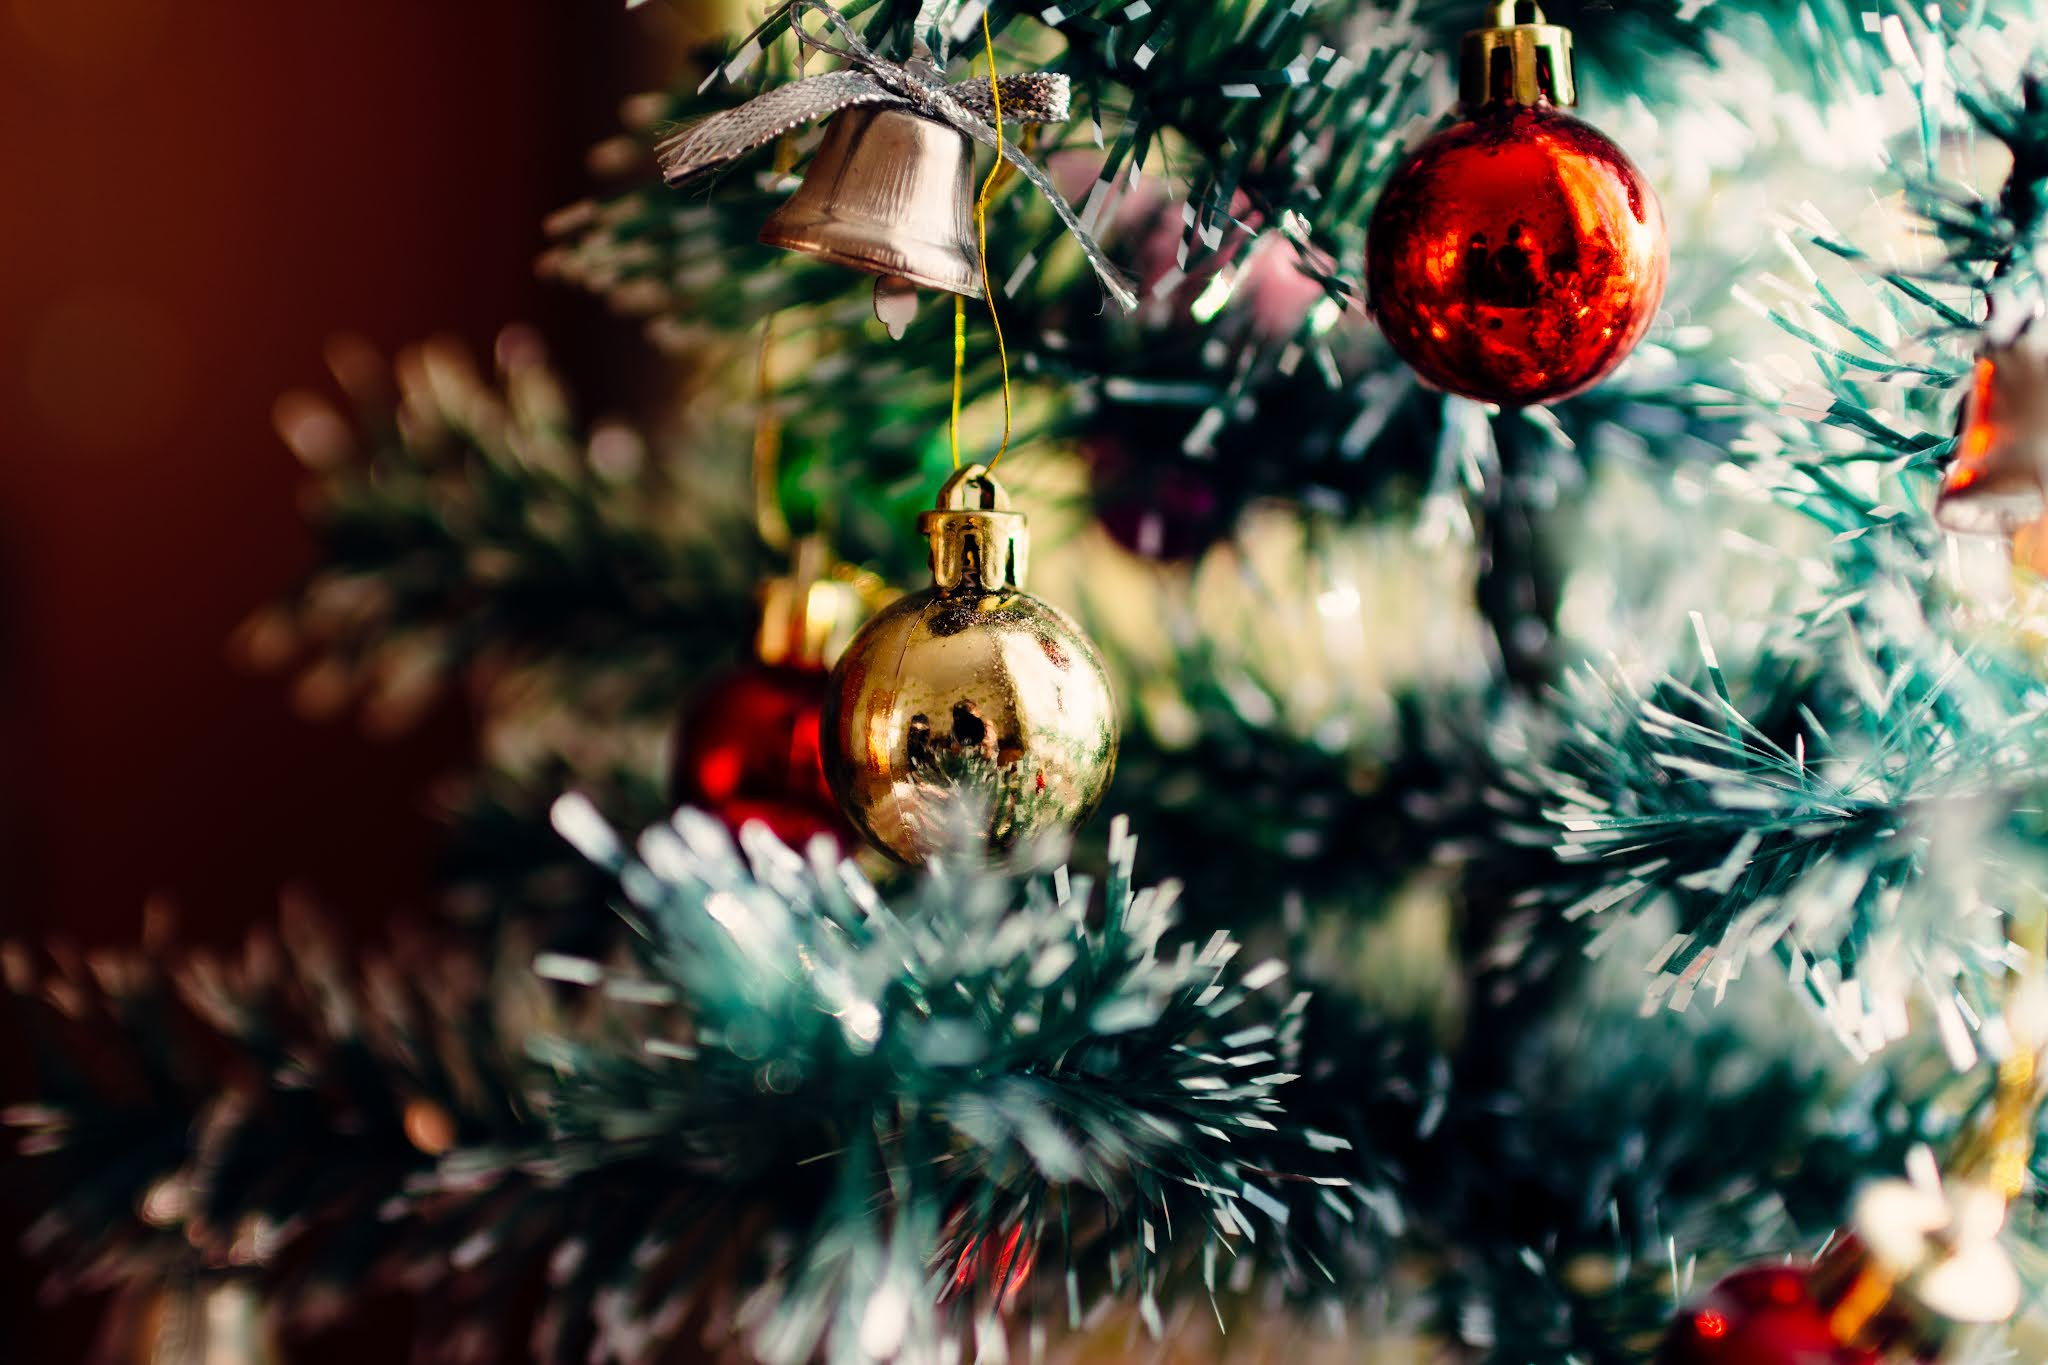 Has Christmas Lots Its Value in 2020?